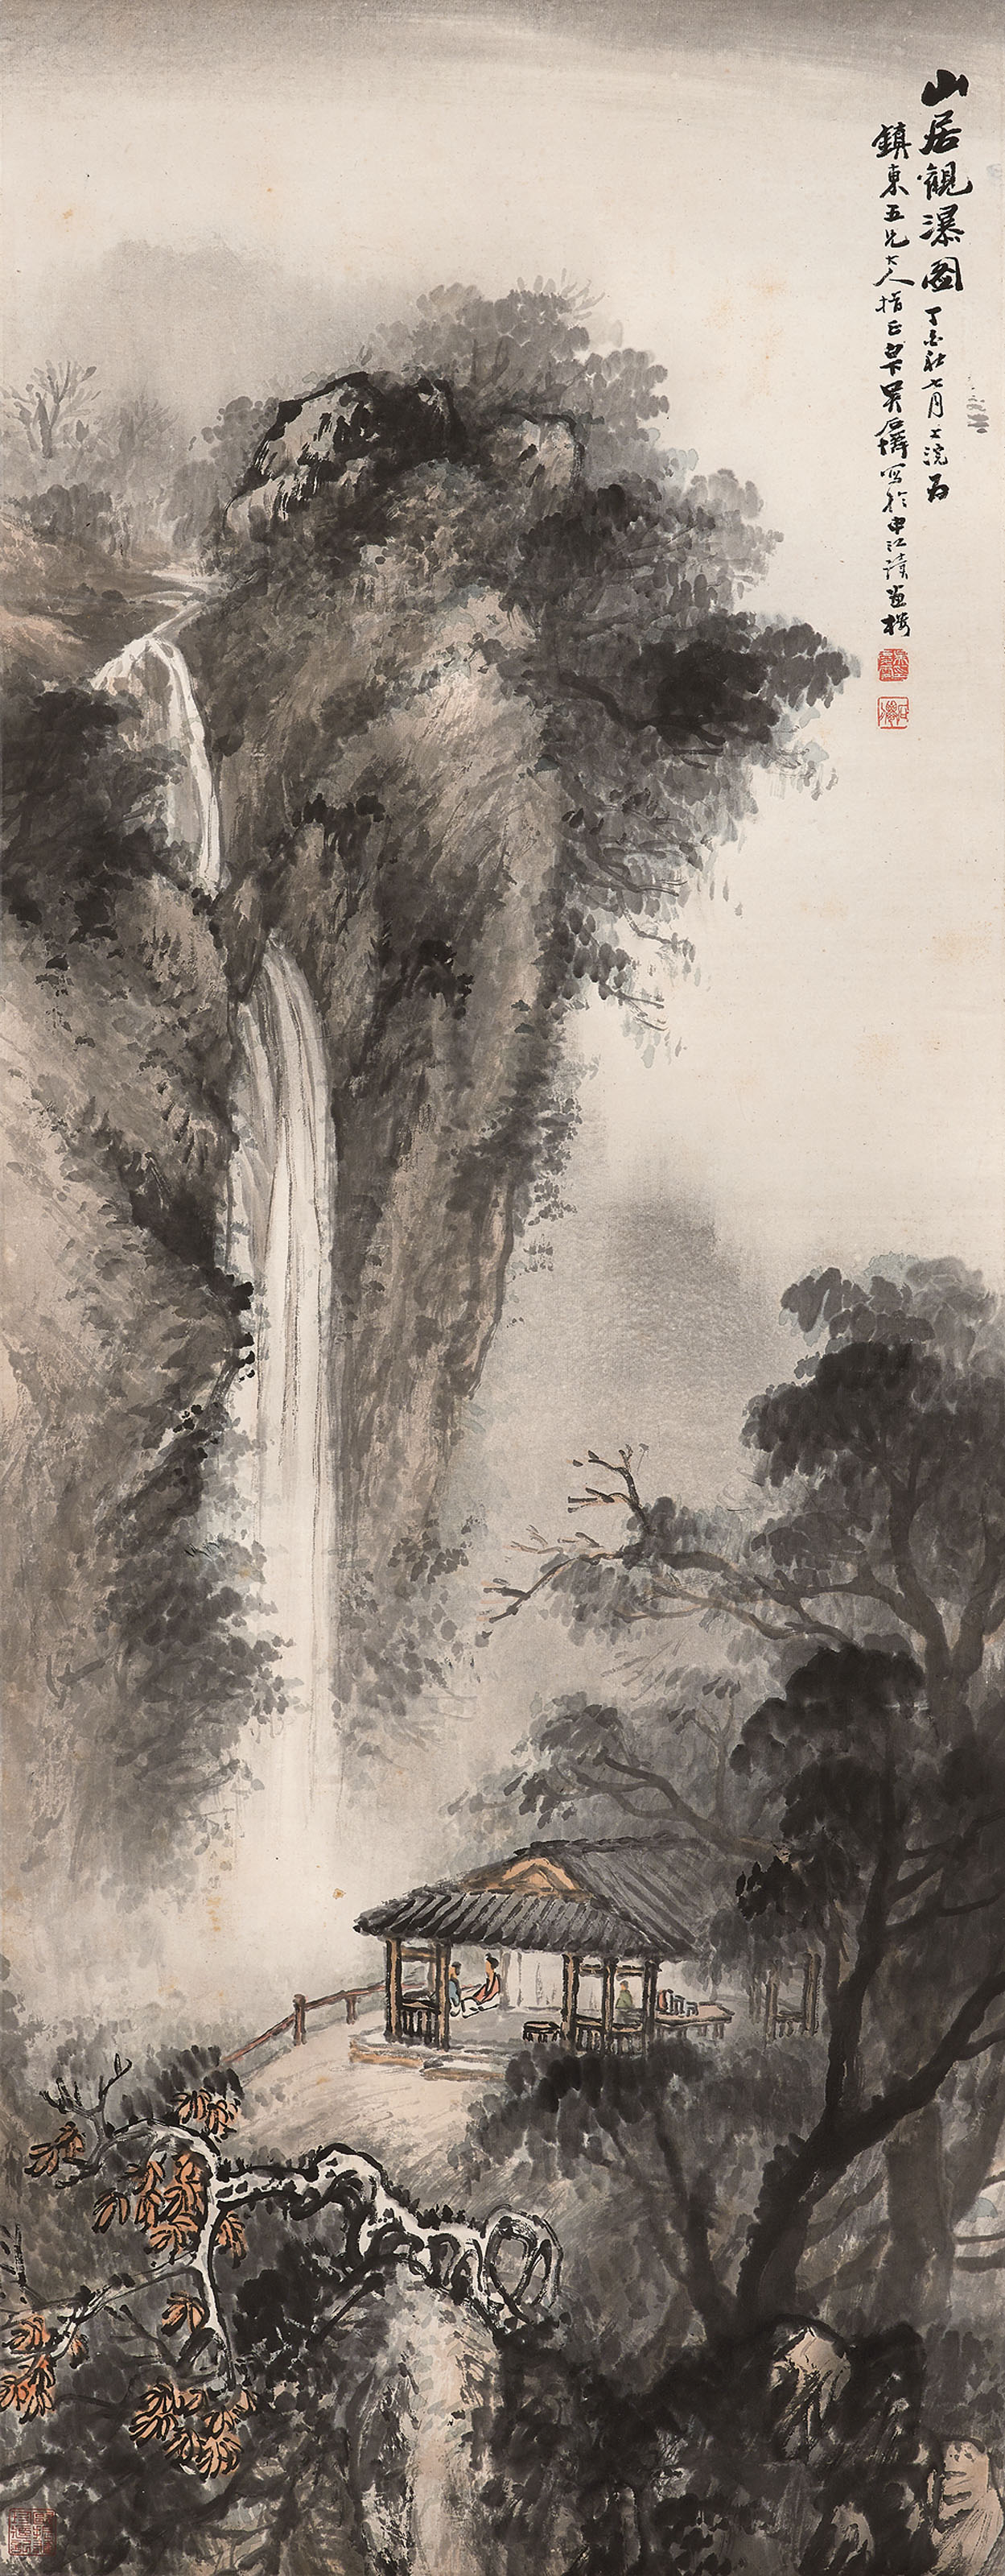 Viewing the Waterfall